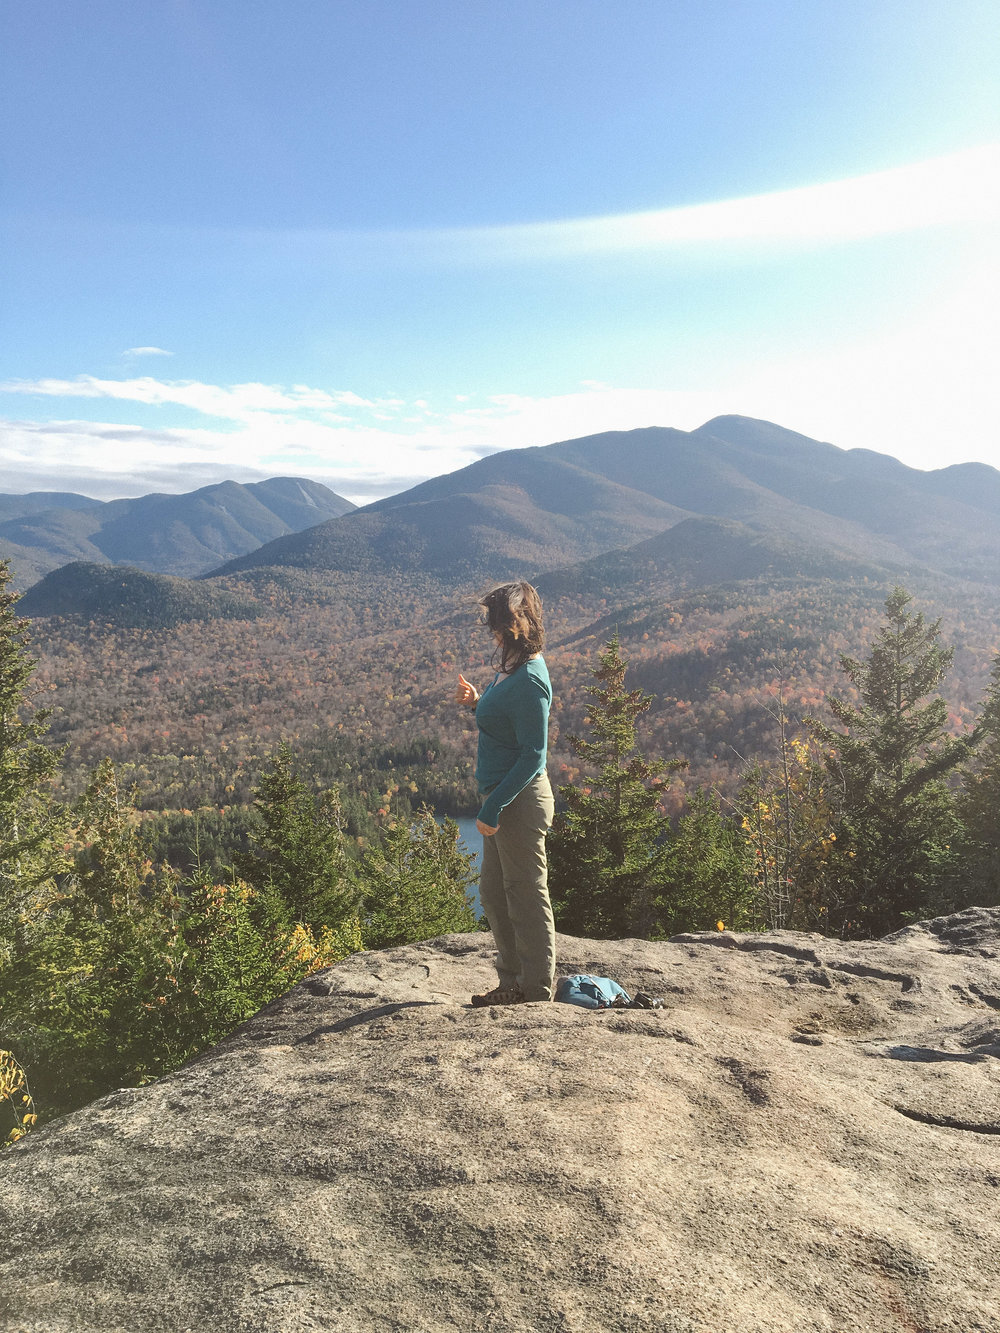 vista on the top of mt. jo in the adirondacks